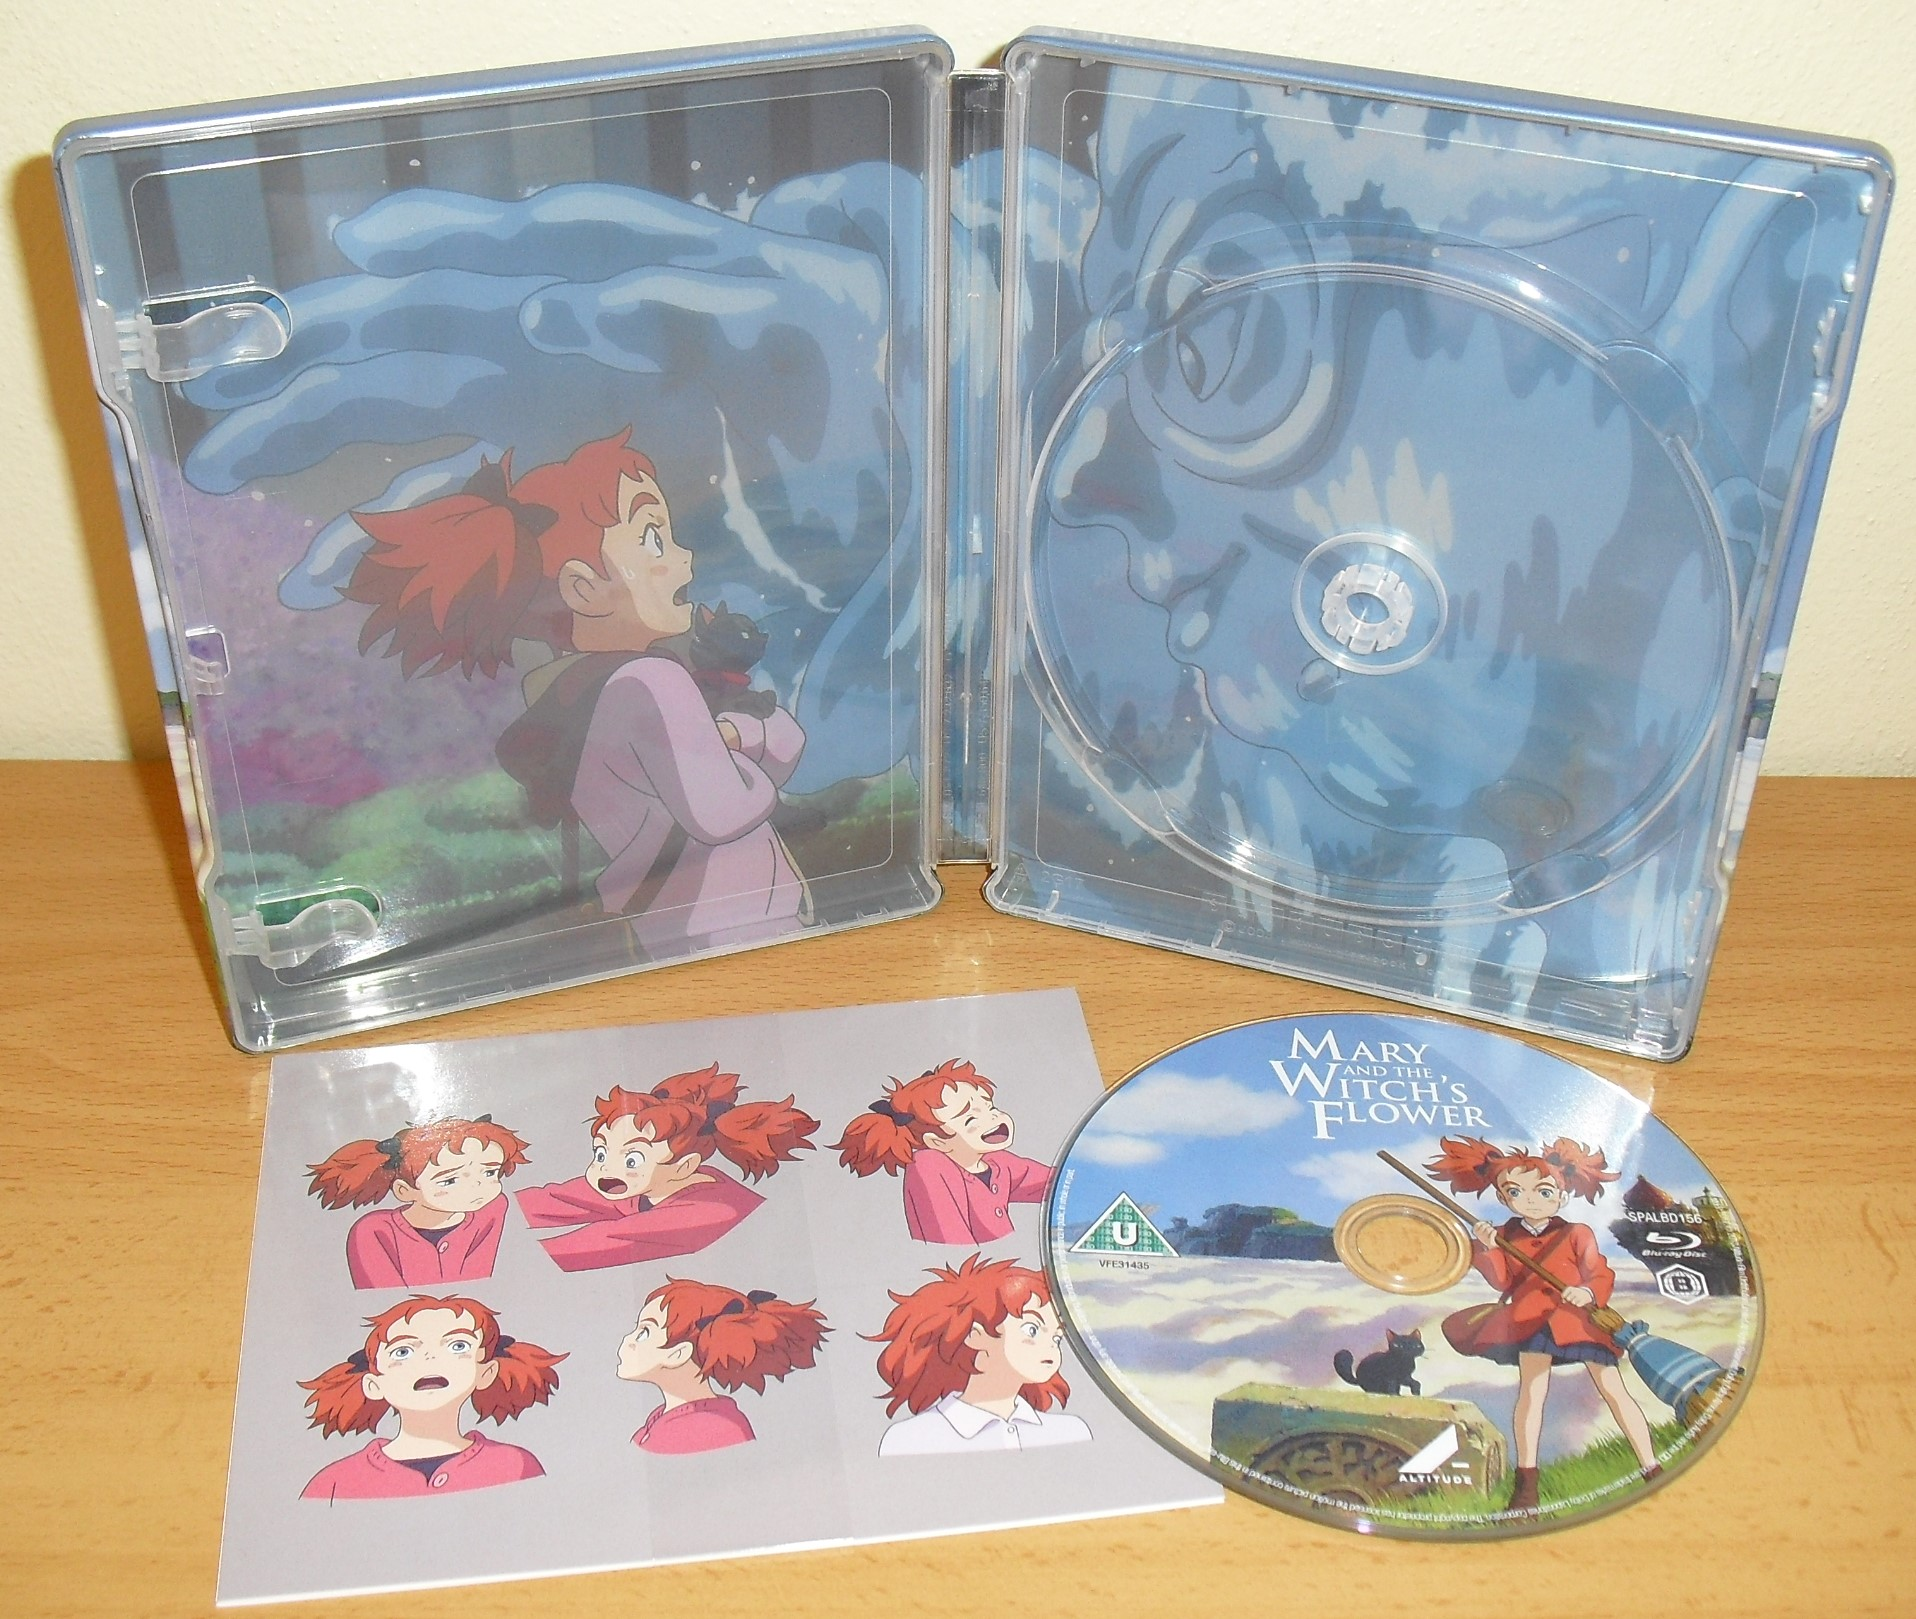 https://cld.pt/dl/download/9da23eb7-0c72-42c4-89e1-6eac3bda0787/Mary.and.the.Witchs.Flower.Steelbook.%287%29.JPG